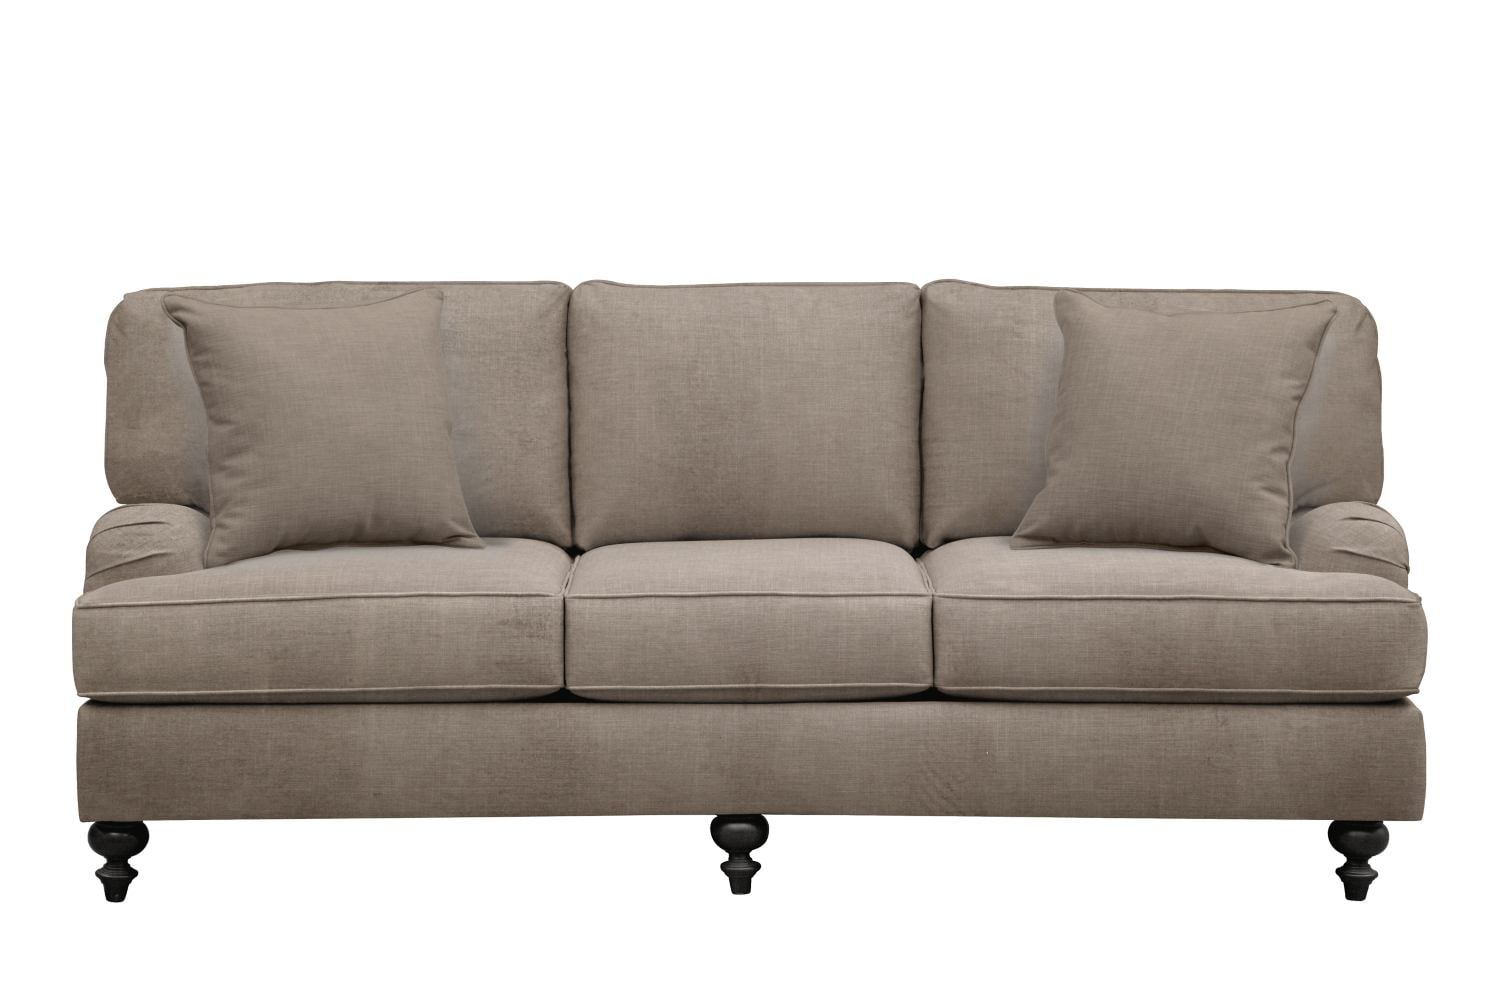 "Living Room Furniture - Avery English Arm Sofa 86"" Oakley III Granite w/ Oakley III Granite Pillow"